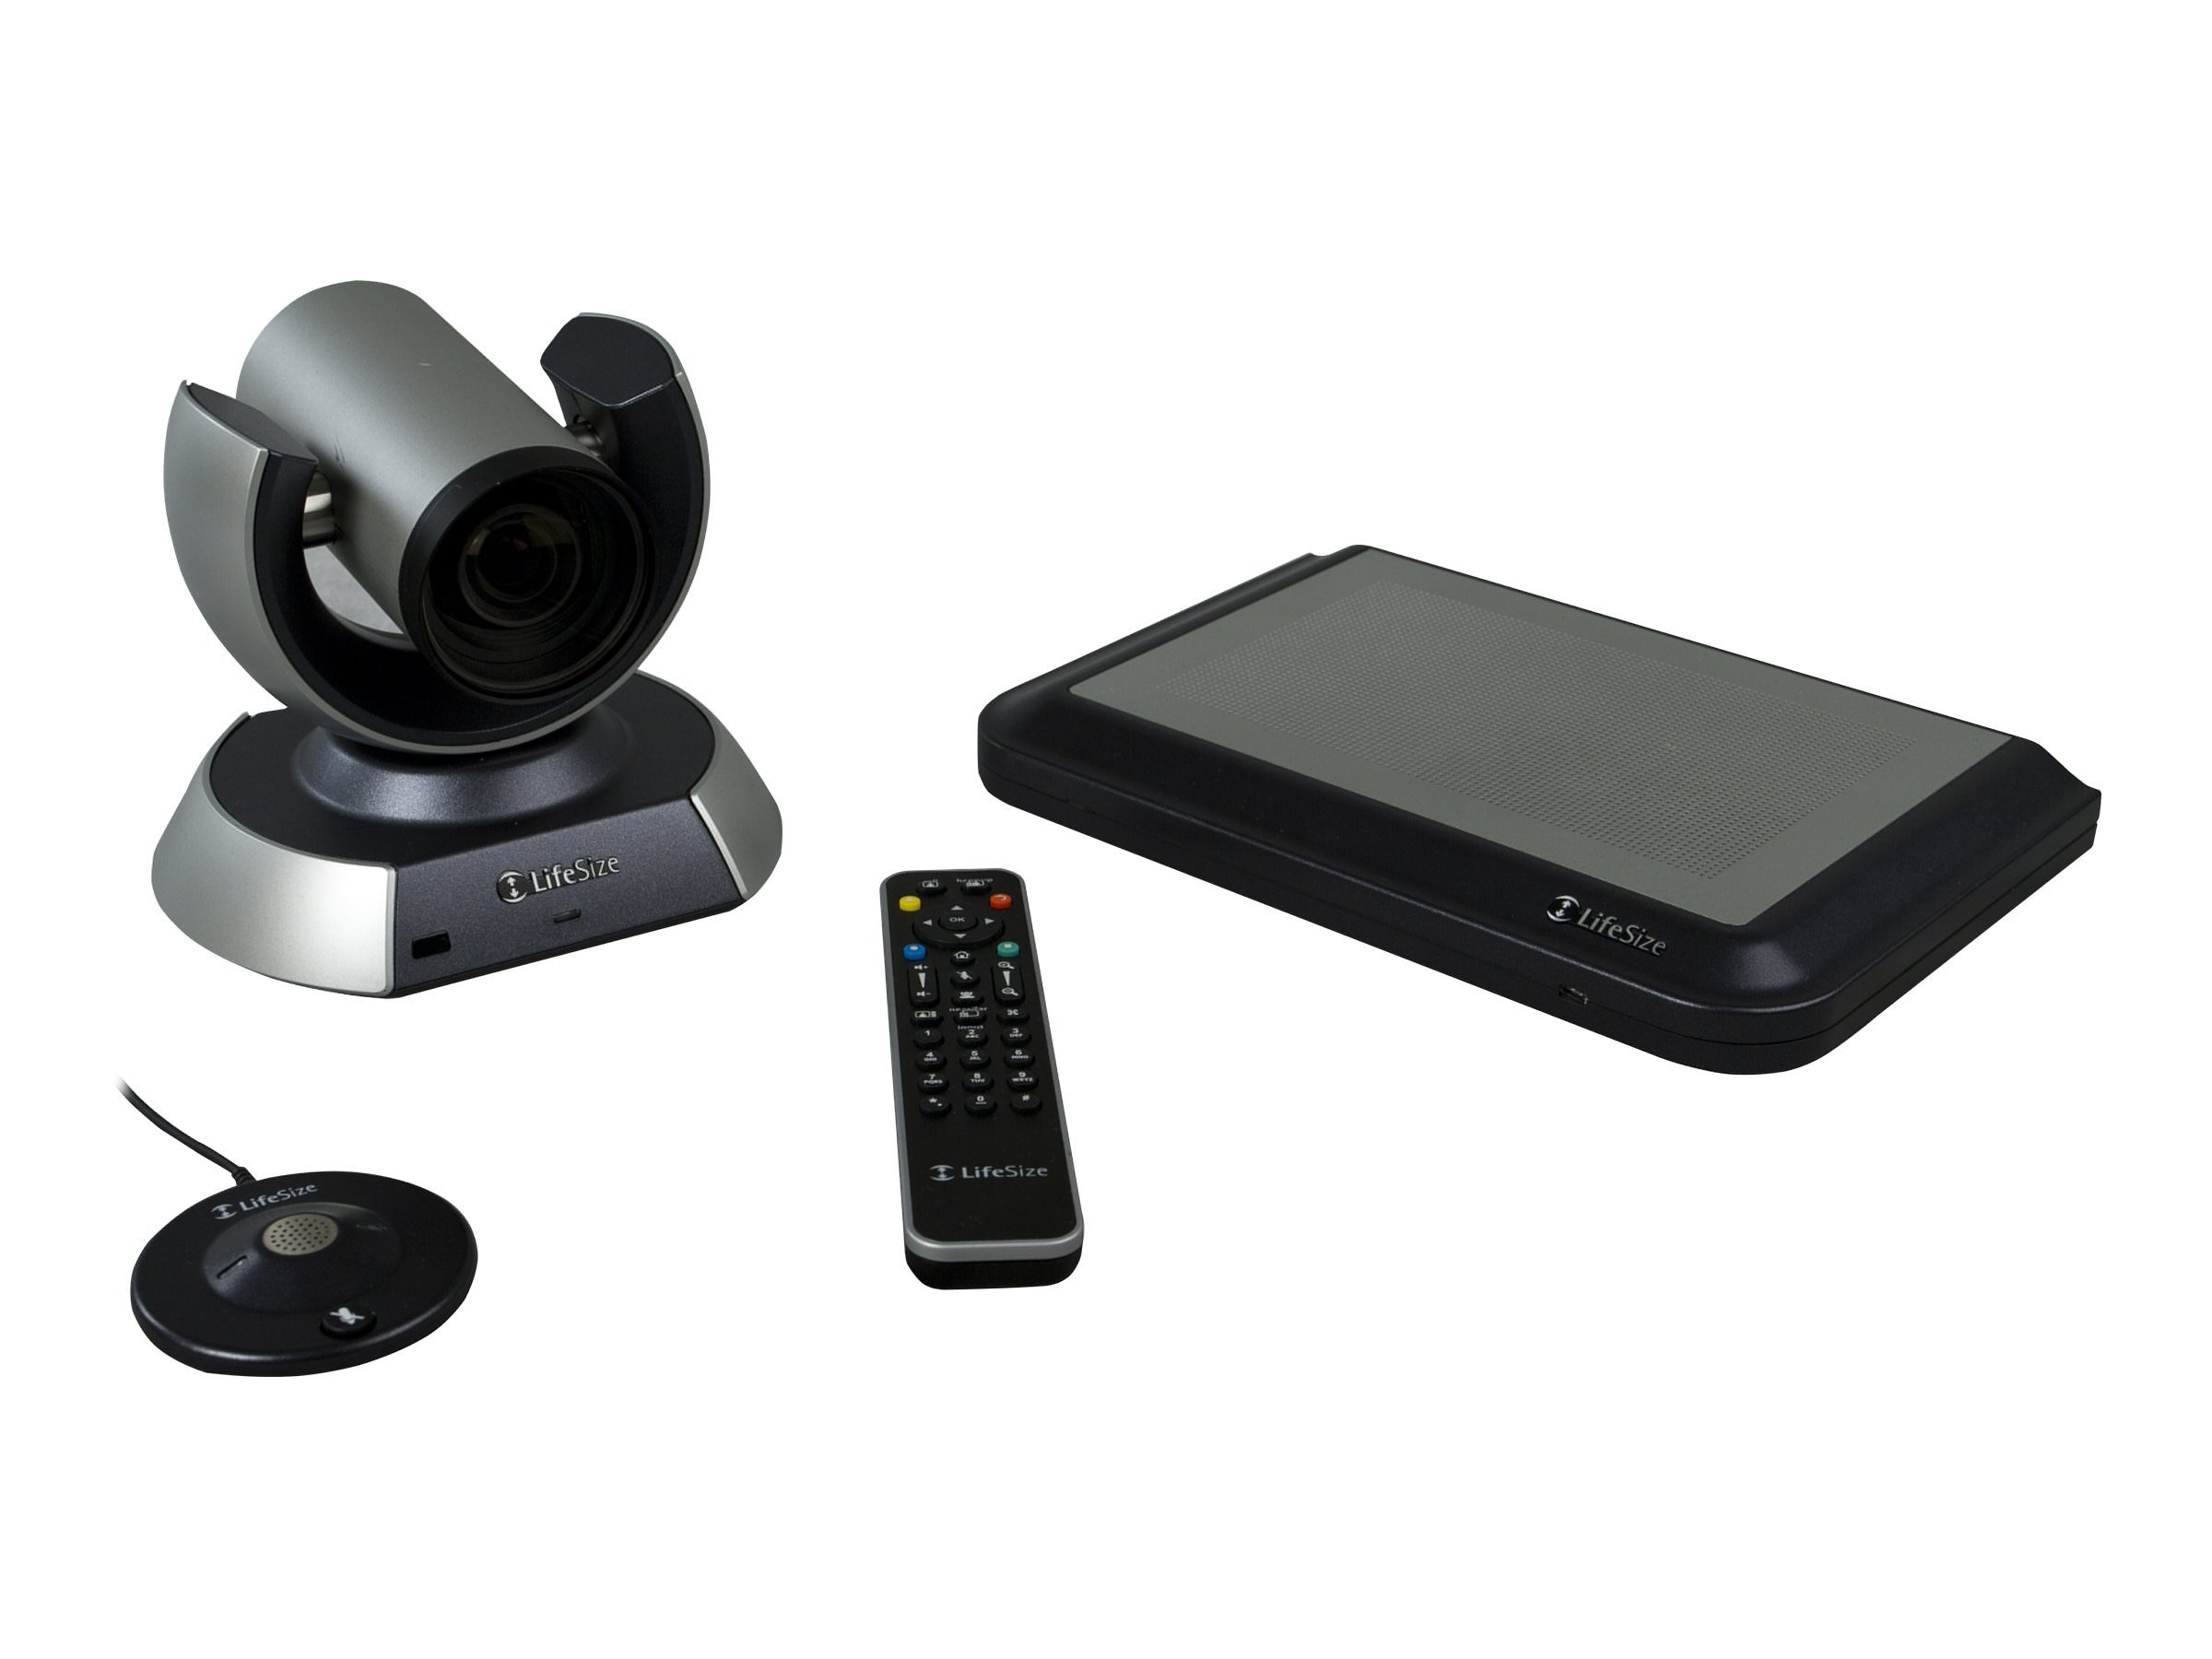 Lifesize Express 220 System with MicPod 10x Camera, 1000-0000-1139, 14465044, Audio/Video Conference Hardware